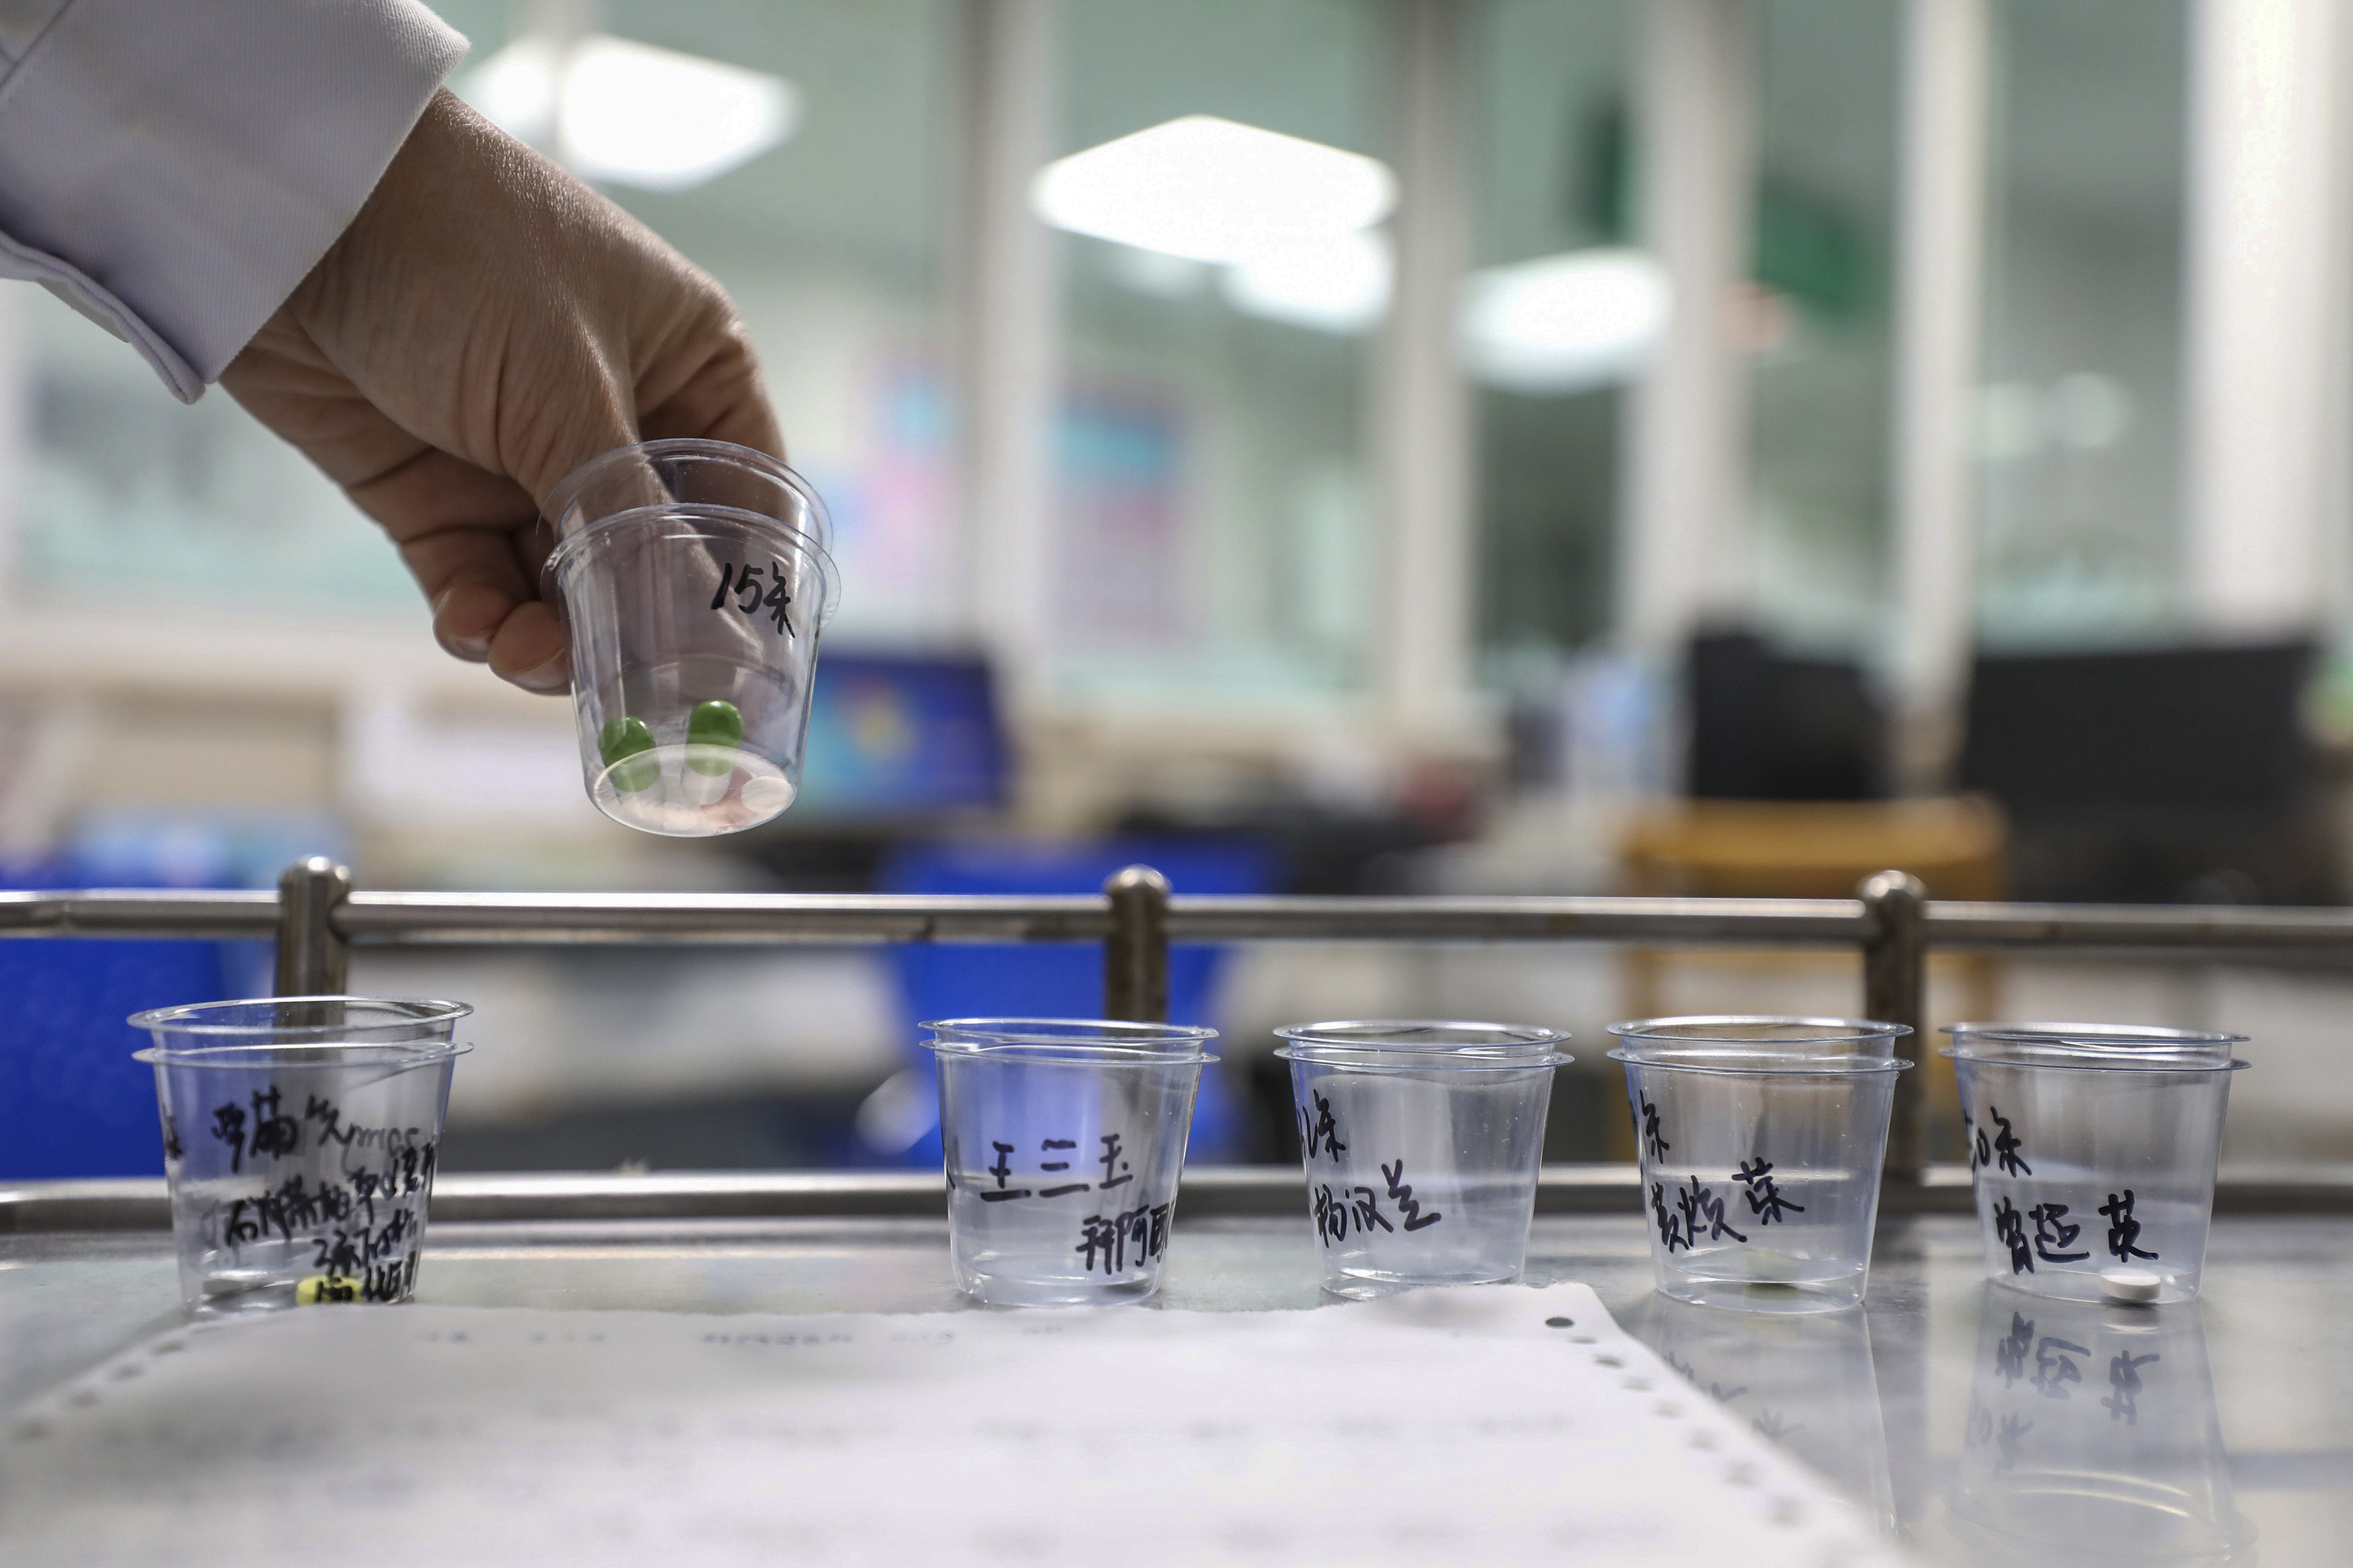 A nurse prepares medicines for patients at Jinyintan Hospital designated for new coronavirus infected patients, in Wuhan